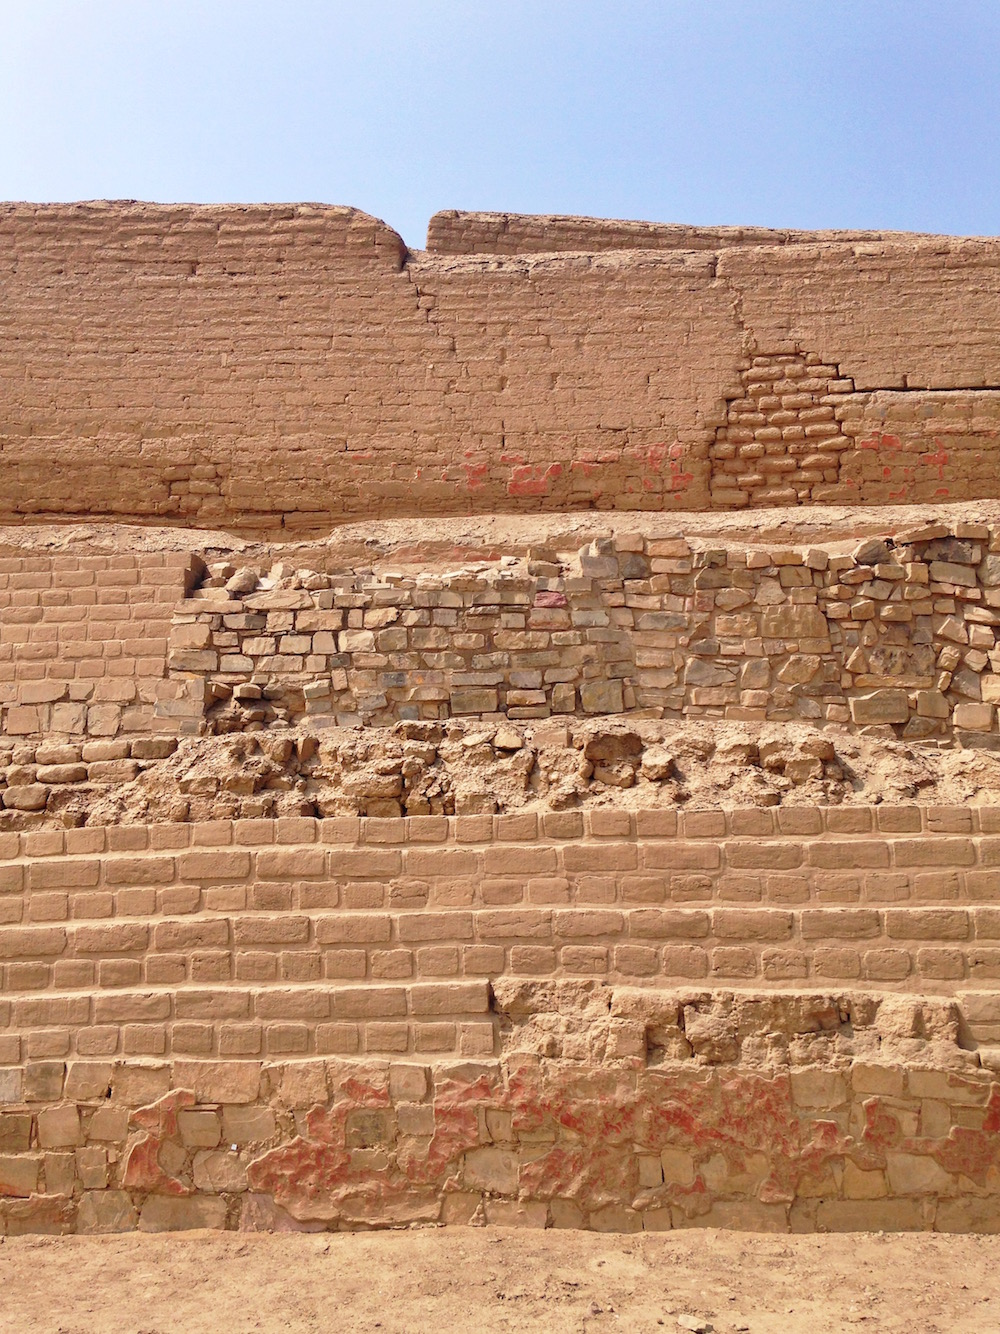 Walls of the Painted Temple, Pachacamac.